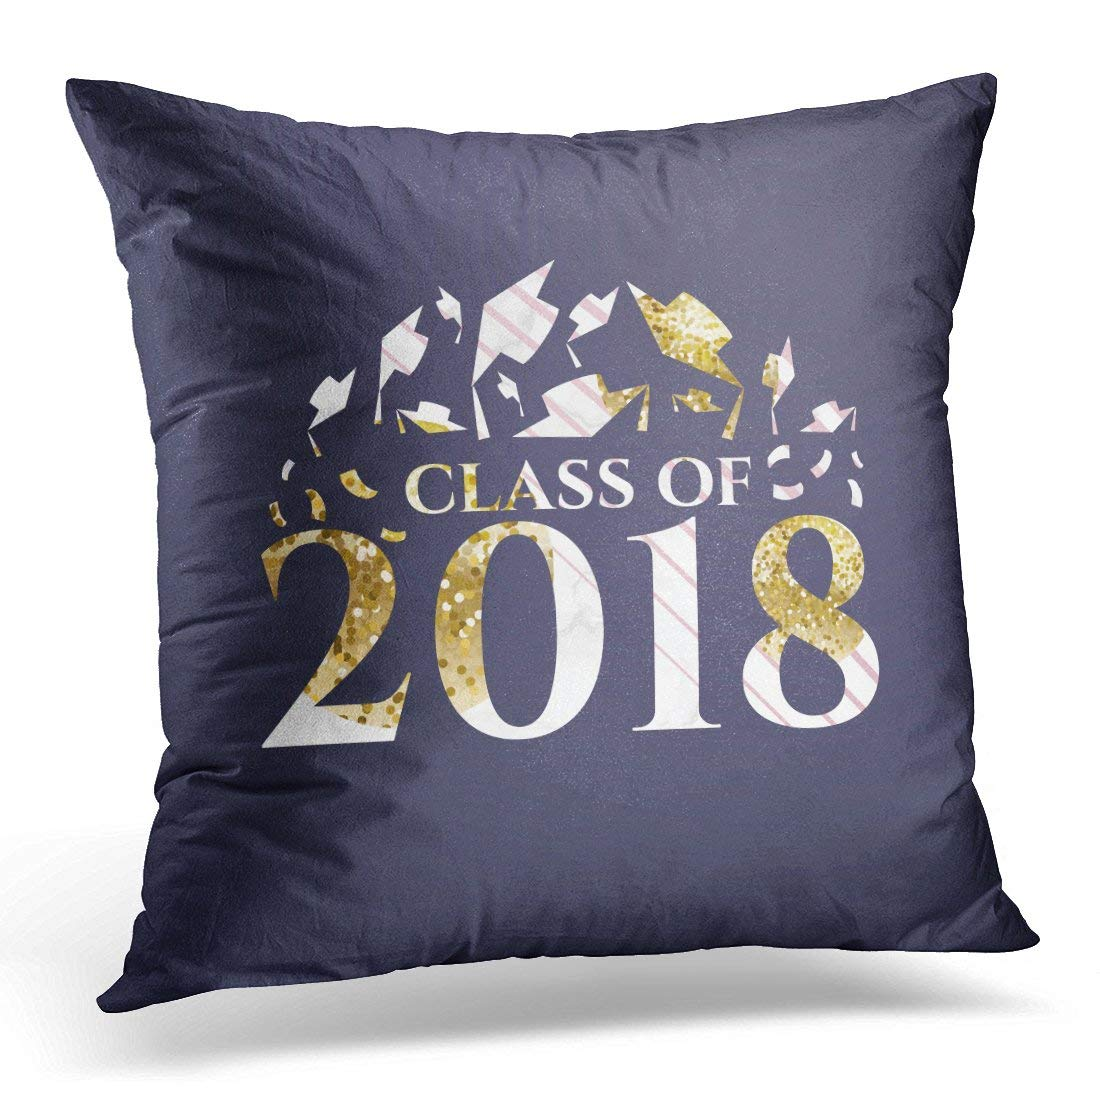 USART Abstract Congratulations on Graduation Class of 2018 Design Graphics for with Gold Flyers and Brochures Pillow Case Pillow Cover 20x20 inch